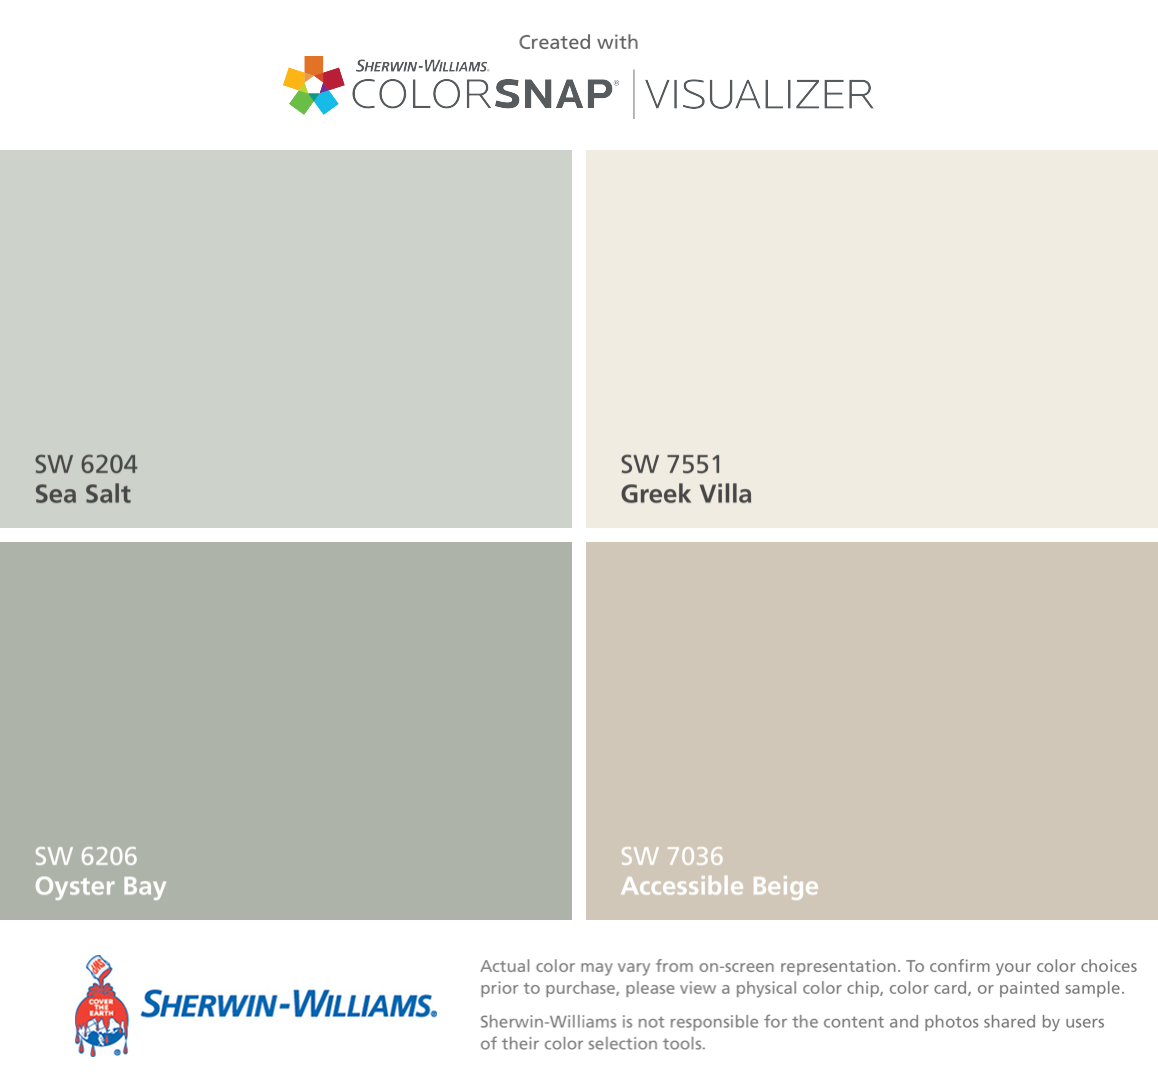 I Found These Colors With Colorsnap Visualizer For Iphone By Sherwin Williams Sea Salt Sw 6204 Paint Colors For Home House Colors Accessible Beige